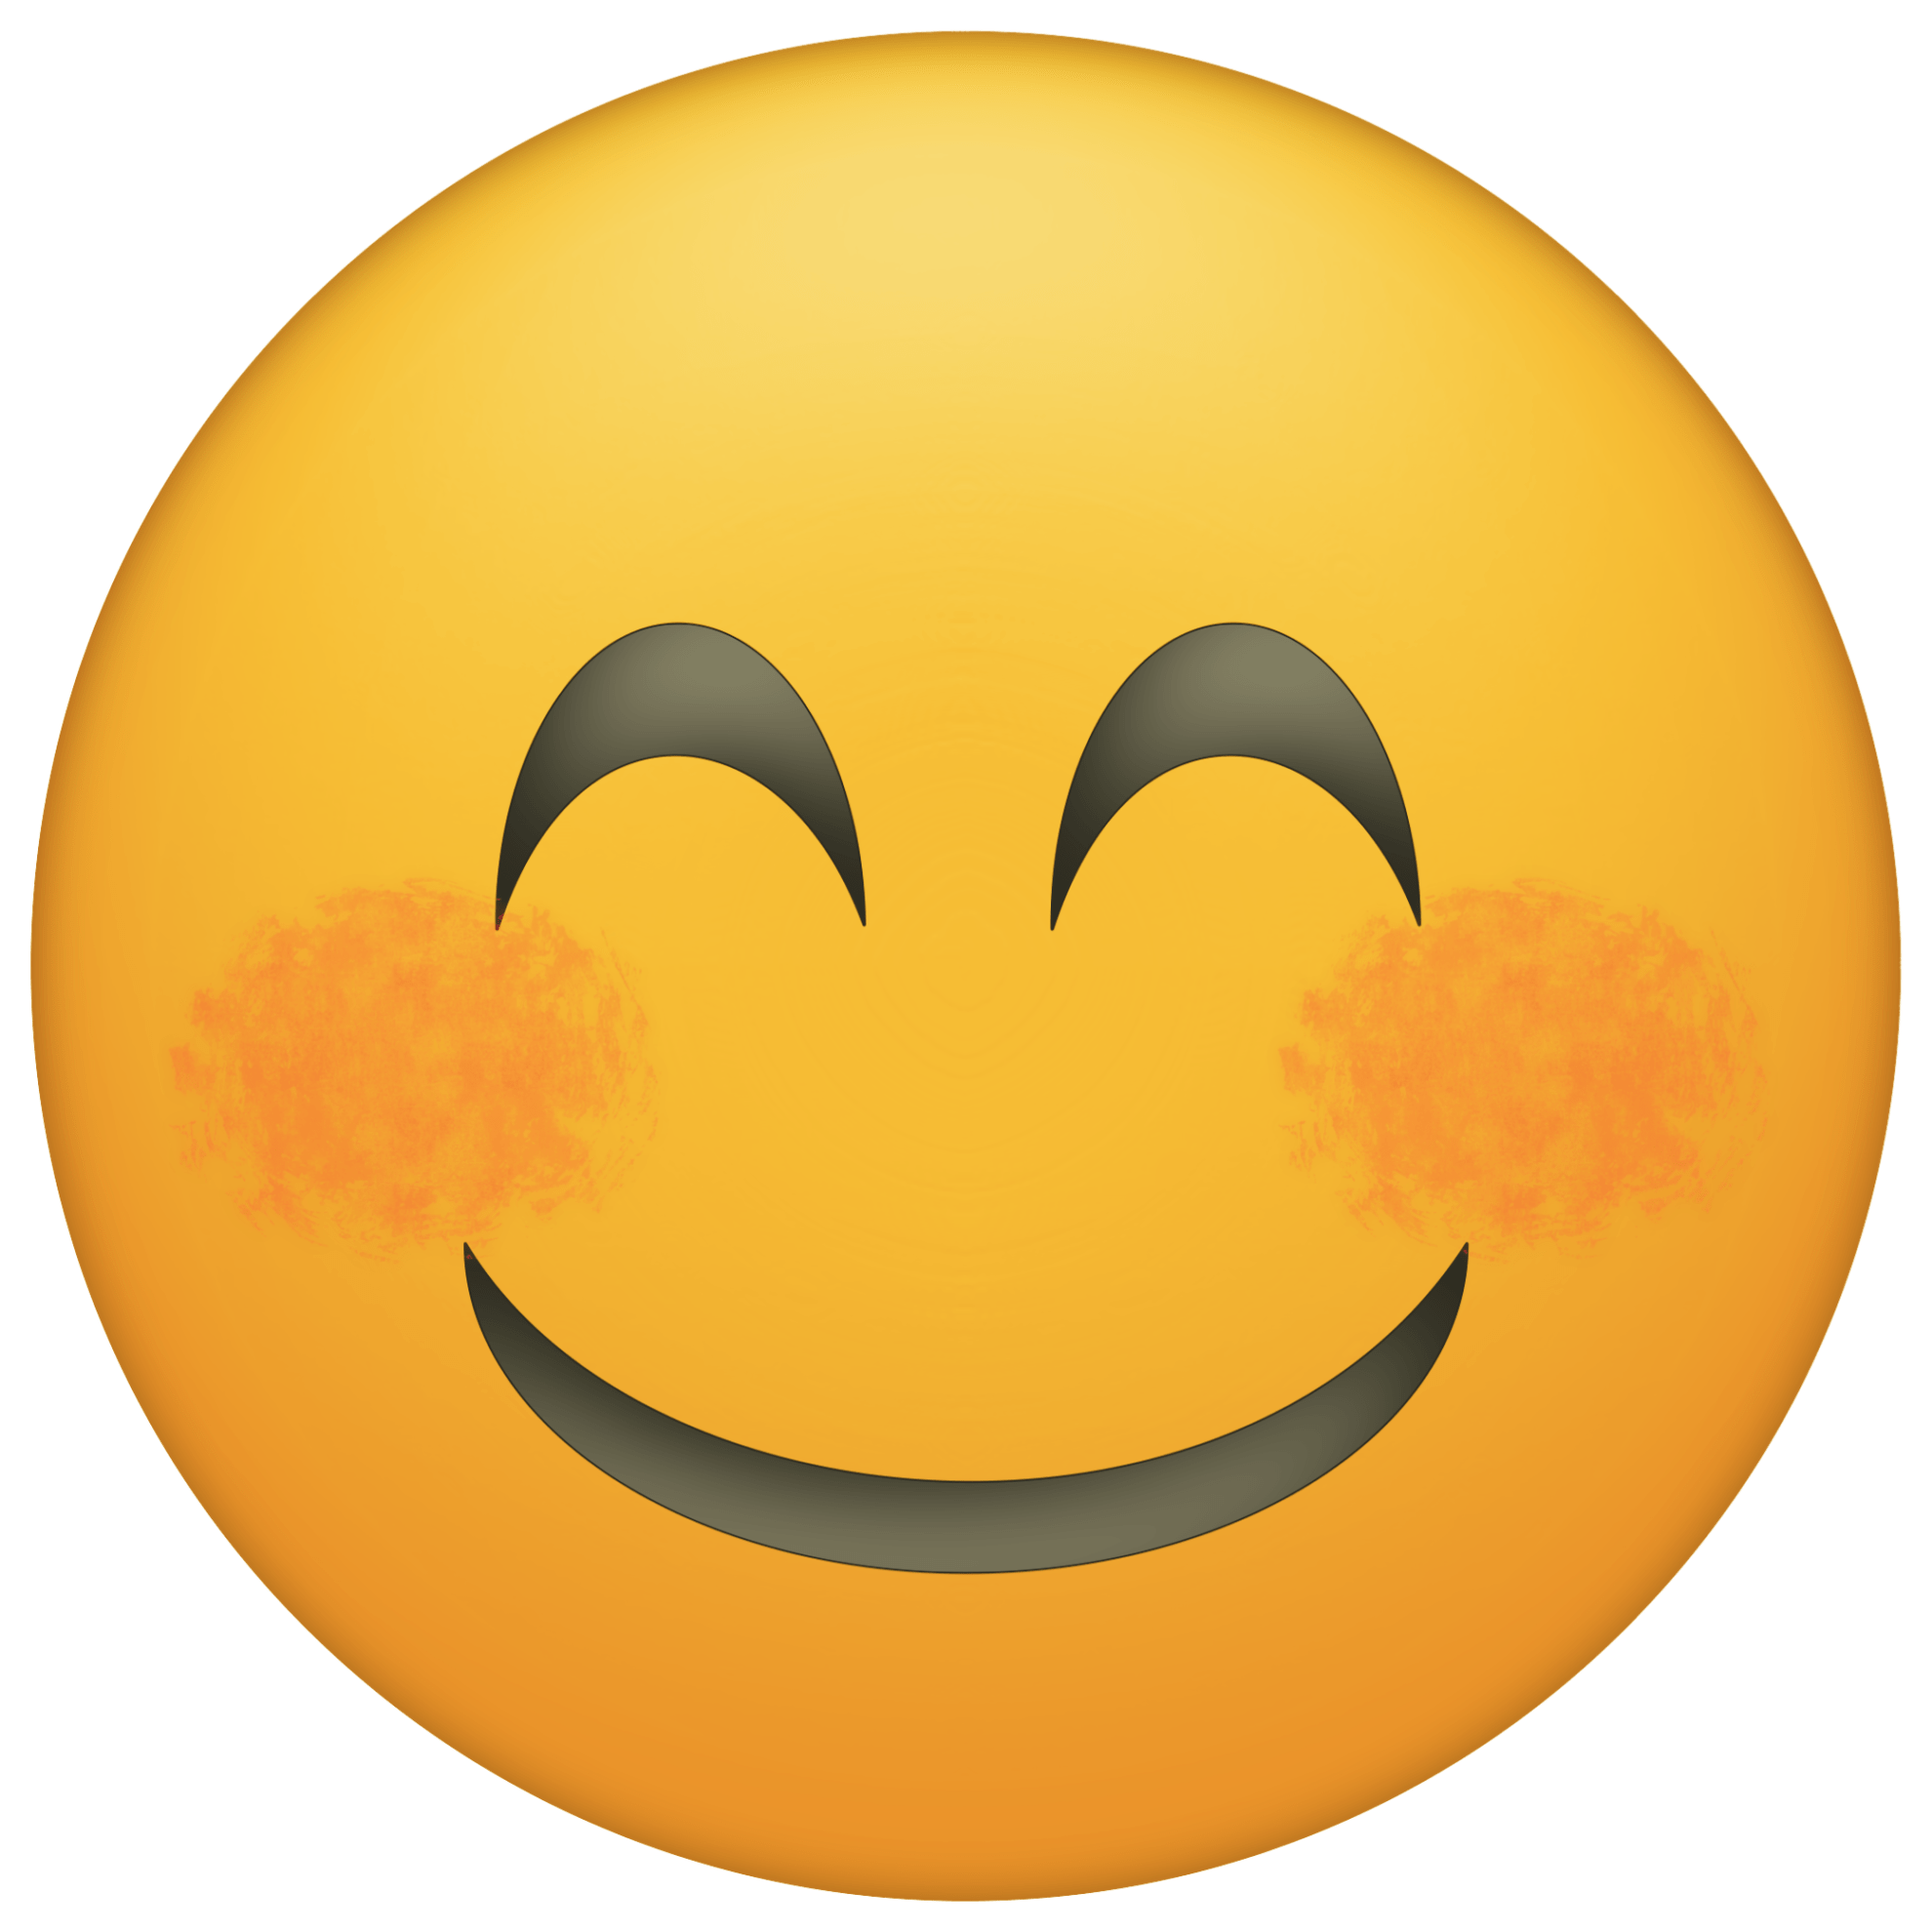 Emoji Faces Printable Free Emoji Printables